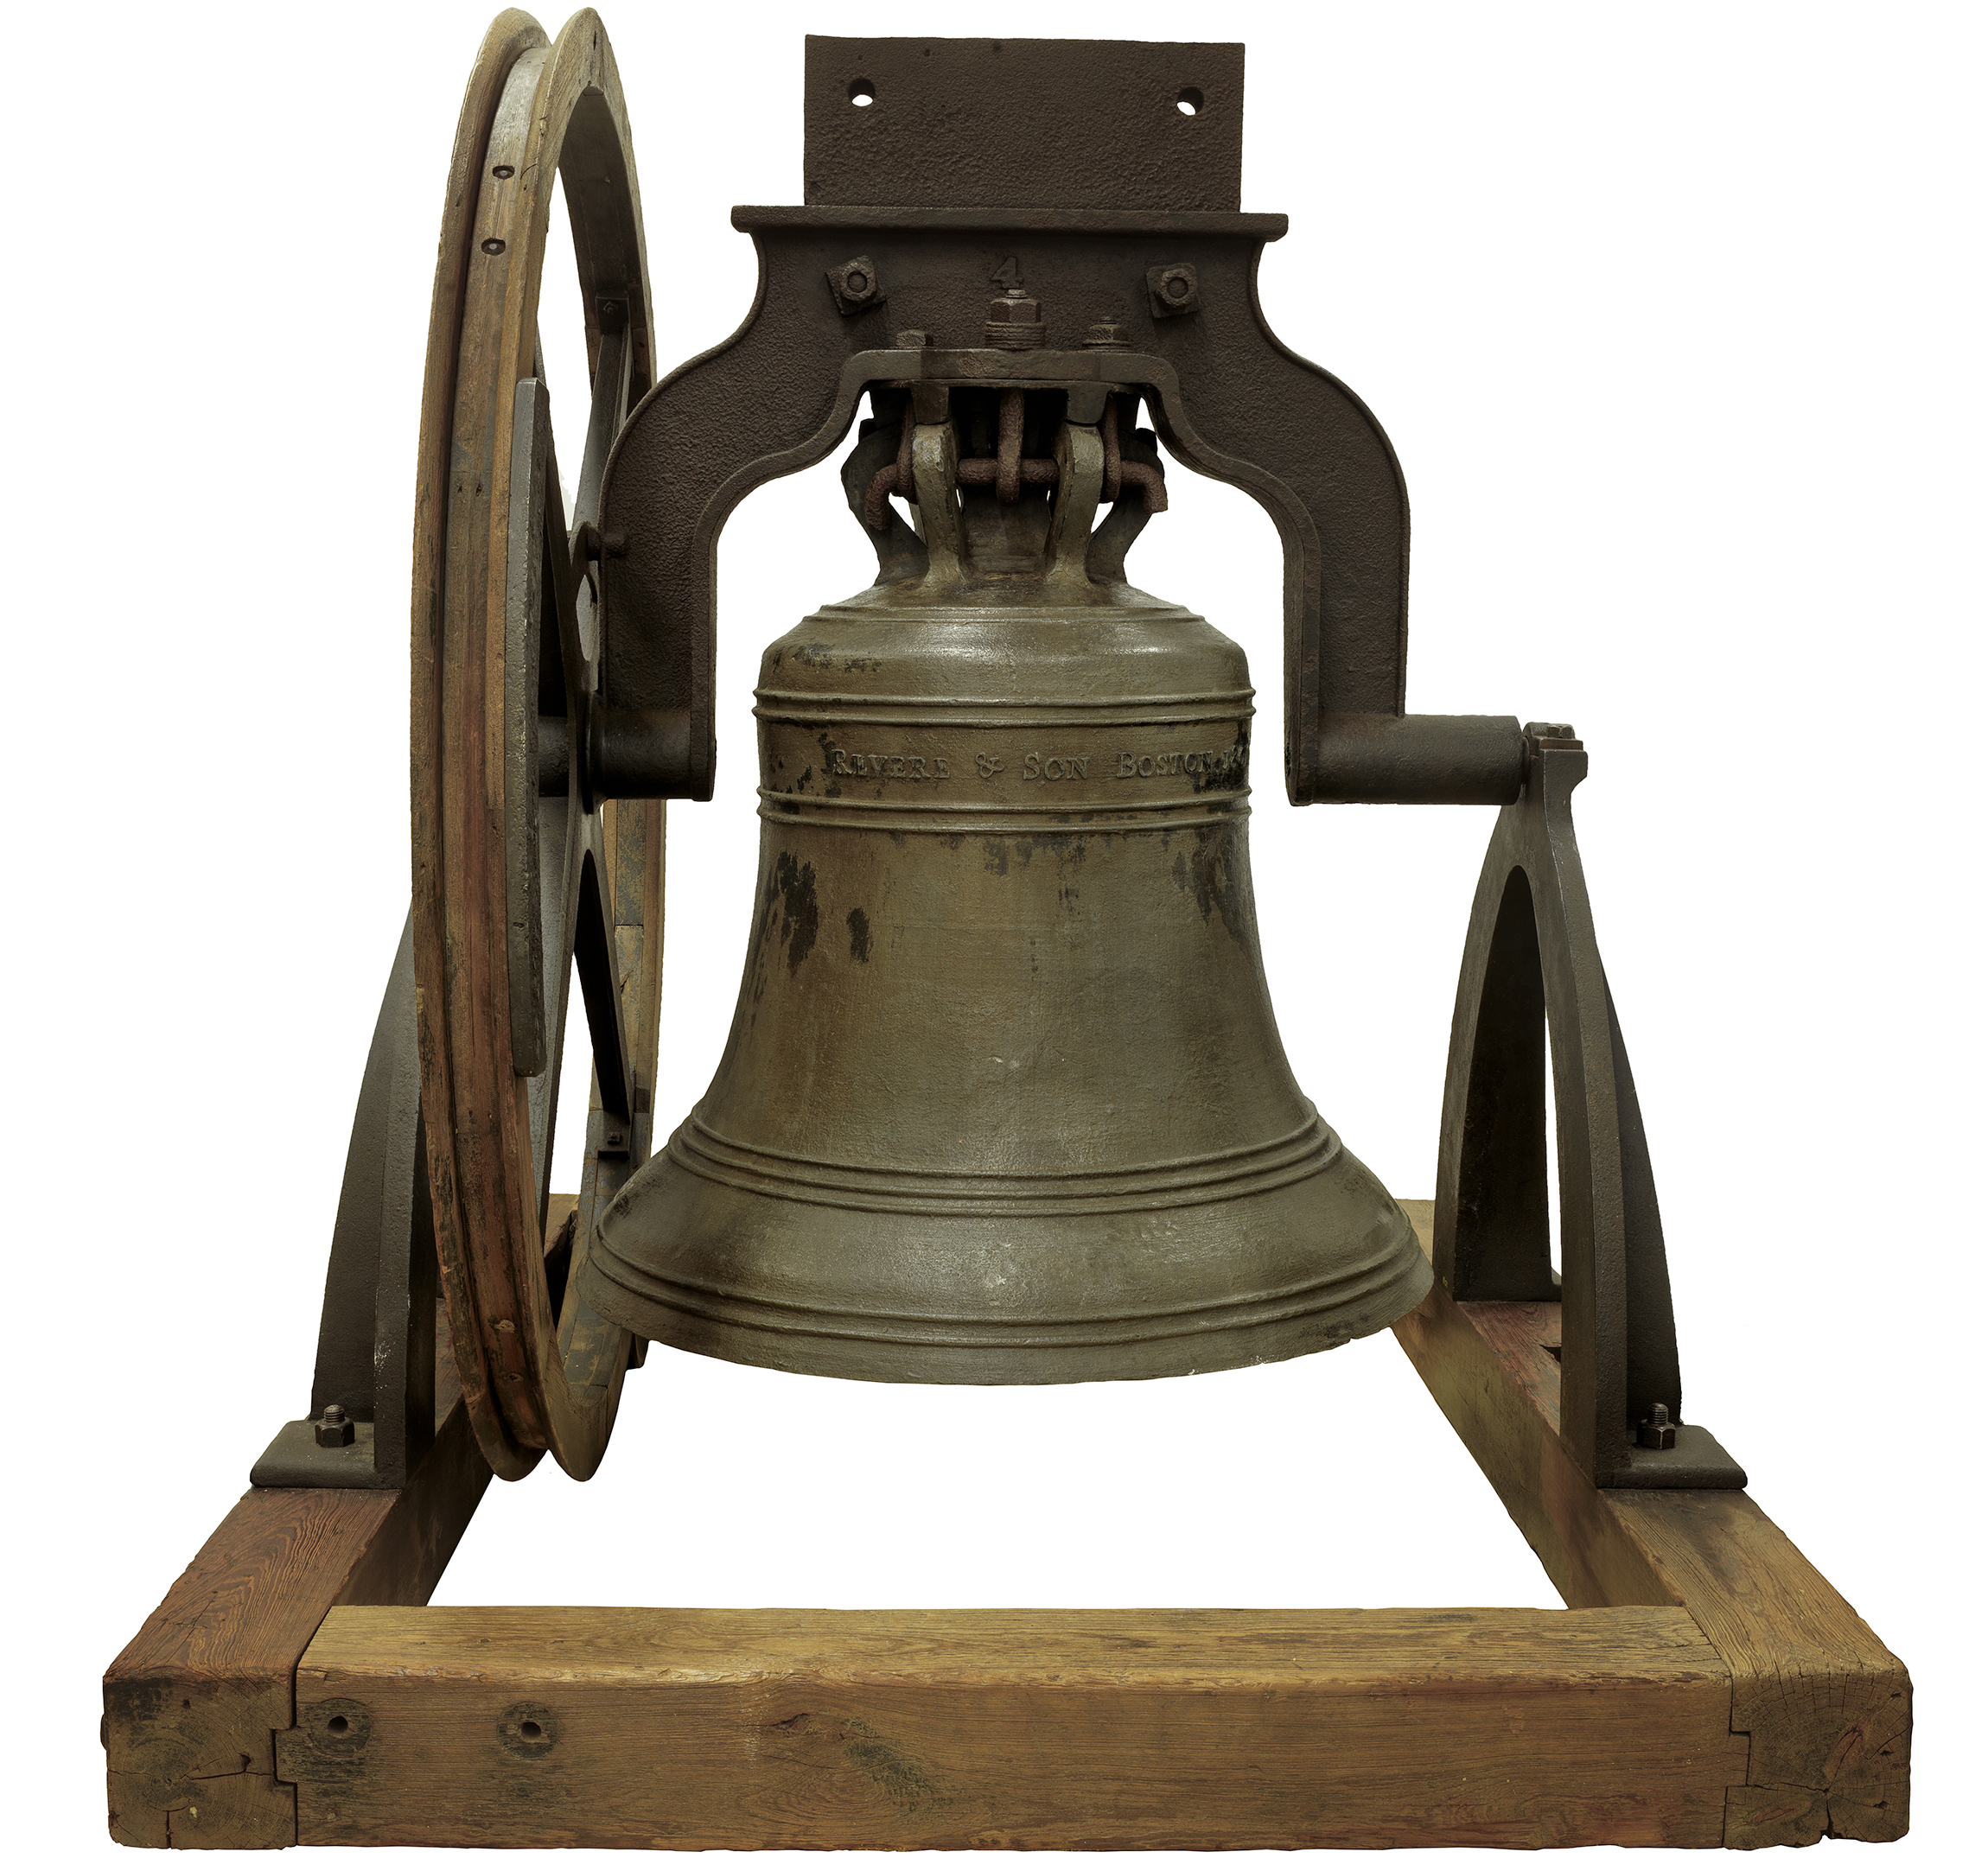 Paul Revere's church bell from